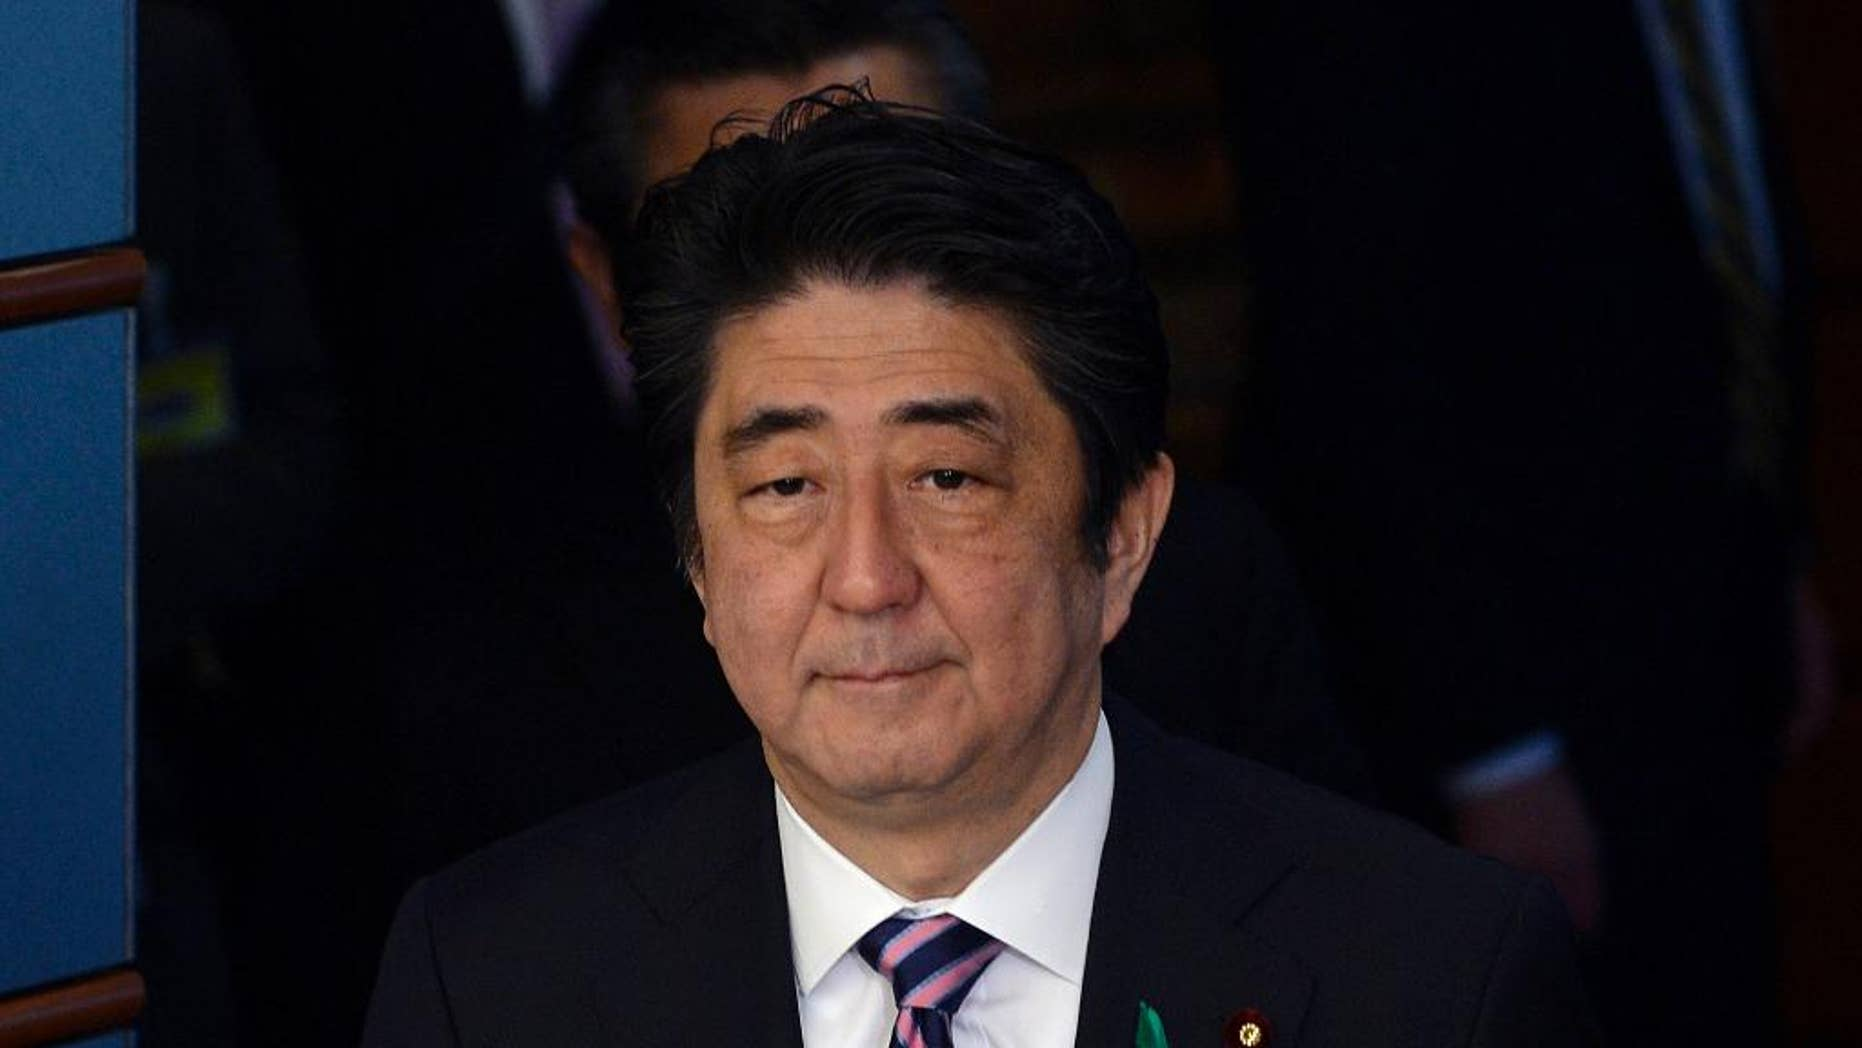 Japanese Prime Minister Shinzo Abe walks on his way to meet a delegation of US representatives at the premier's official residence in Tokyo, Japan, Monday, April 21, 2014. Japan's Prime Minister Abe has sent a religious offering to a Tokyo shrine that honors the dead including executed war criminals, a center of tension with Japan's neighbors. Abe's offering Monday at the Yasukuni Shrine marks the April 21-23 spring festival, one of the shrine's key annual events. But the move suggests he will not visit Yasukuni ahead of President Barack Obama's visit beginning Wednesday. (AP Photo/Franck Robicon, Pool)